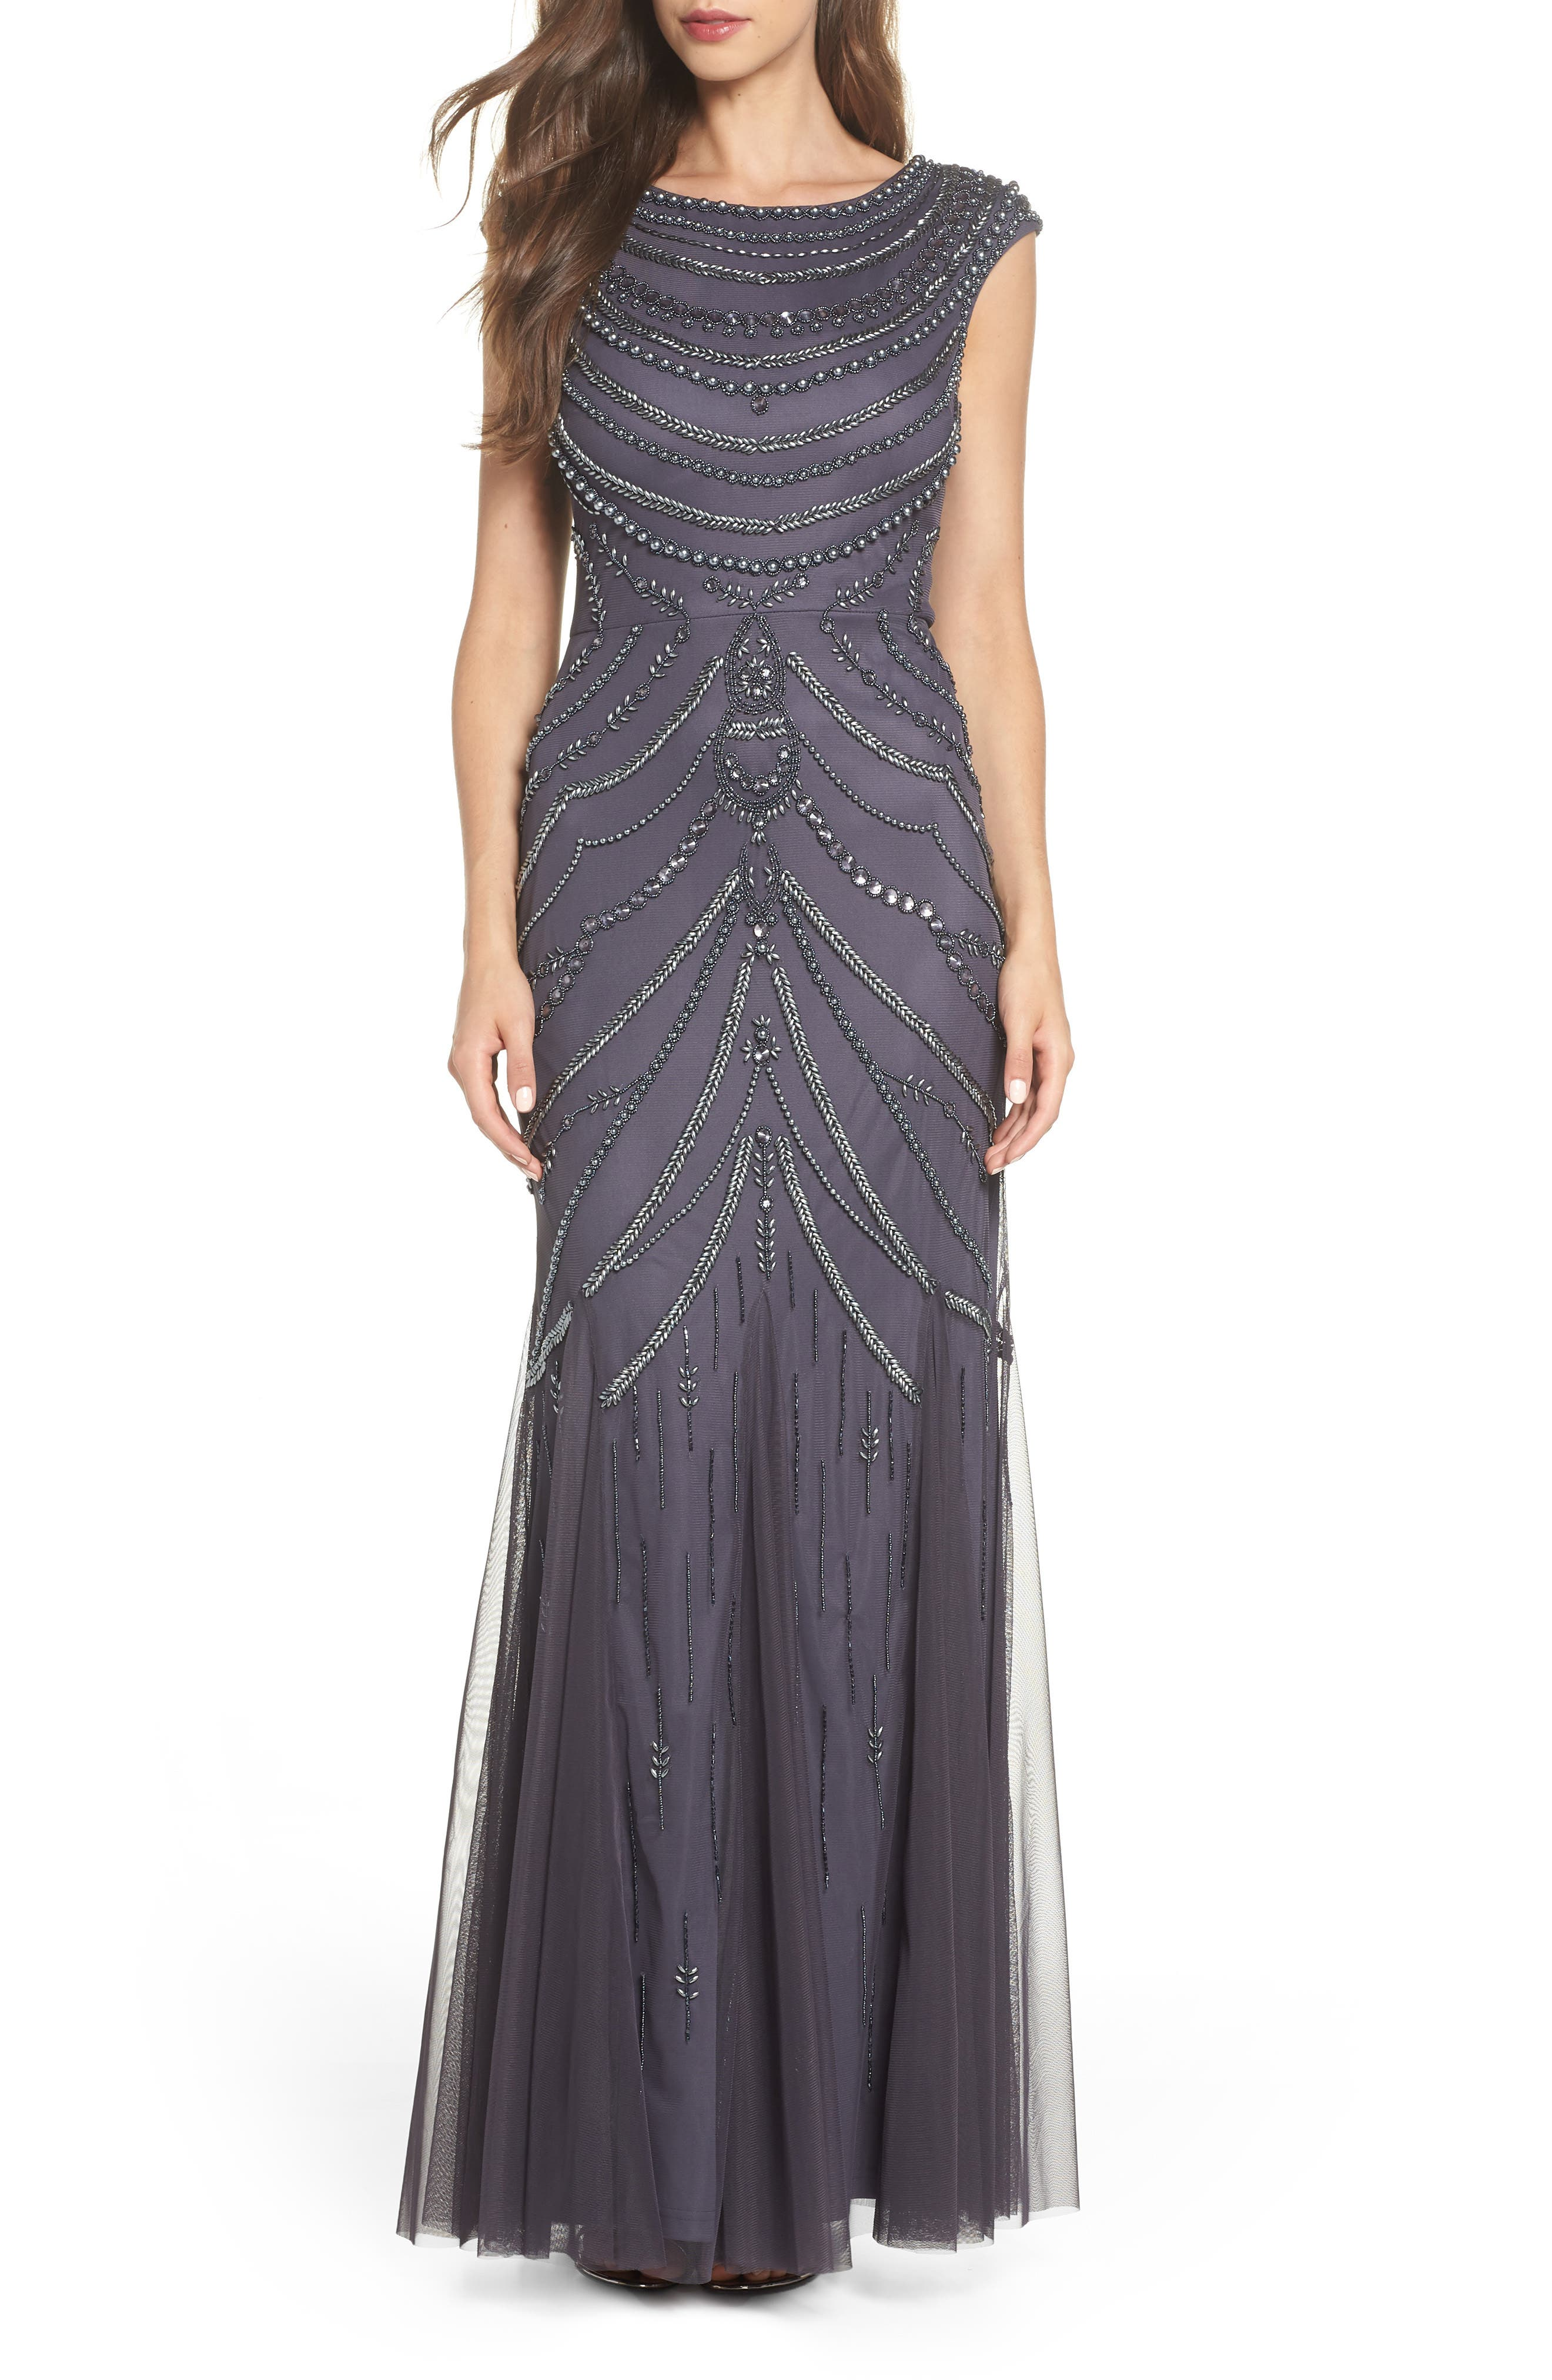 1920s Evening Dresses & Formal Gowns Womens Adrianna Papell Beaded Trumpet Gown $359.00 AT vintagedancer.com